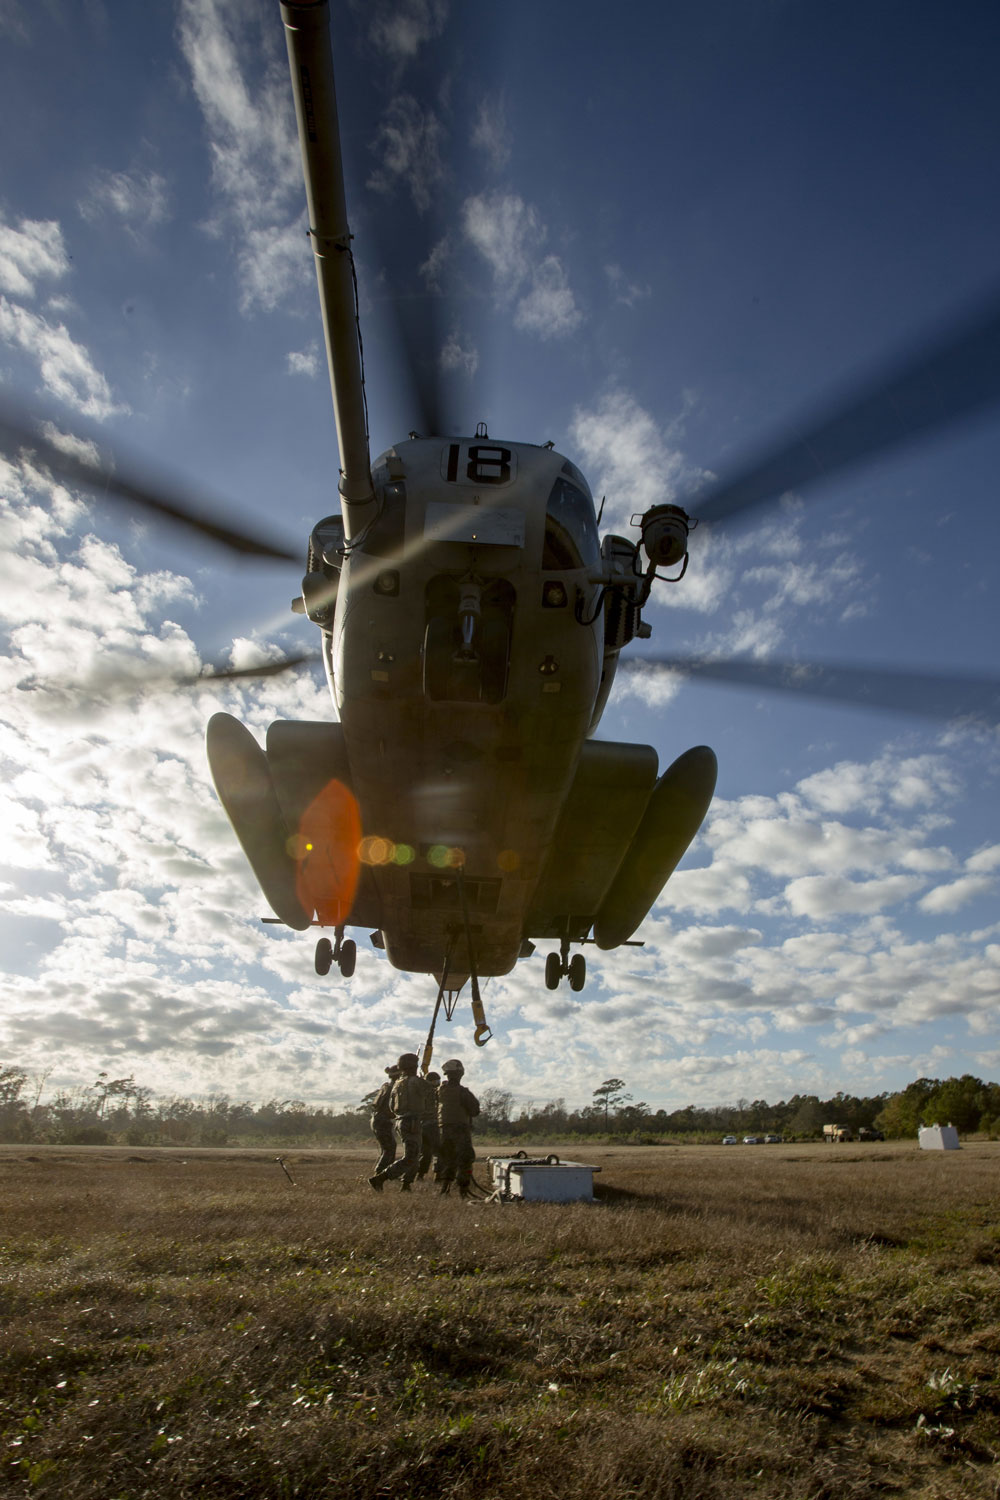 A U.S. Marine Helicopter Support Team is comprised of approximately eight landing support specialist Marines who ensure the equipment is properly attached and secured before pilots transport the gear or supplies to their destination.